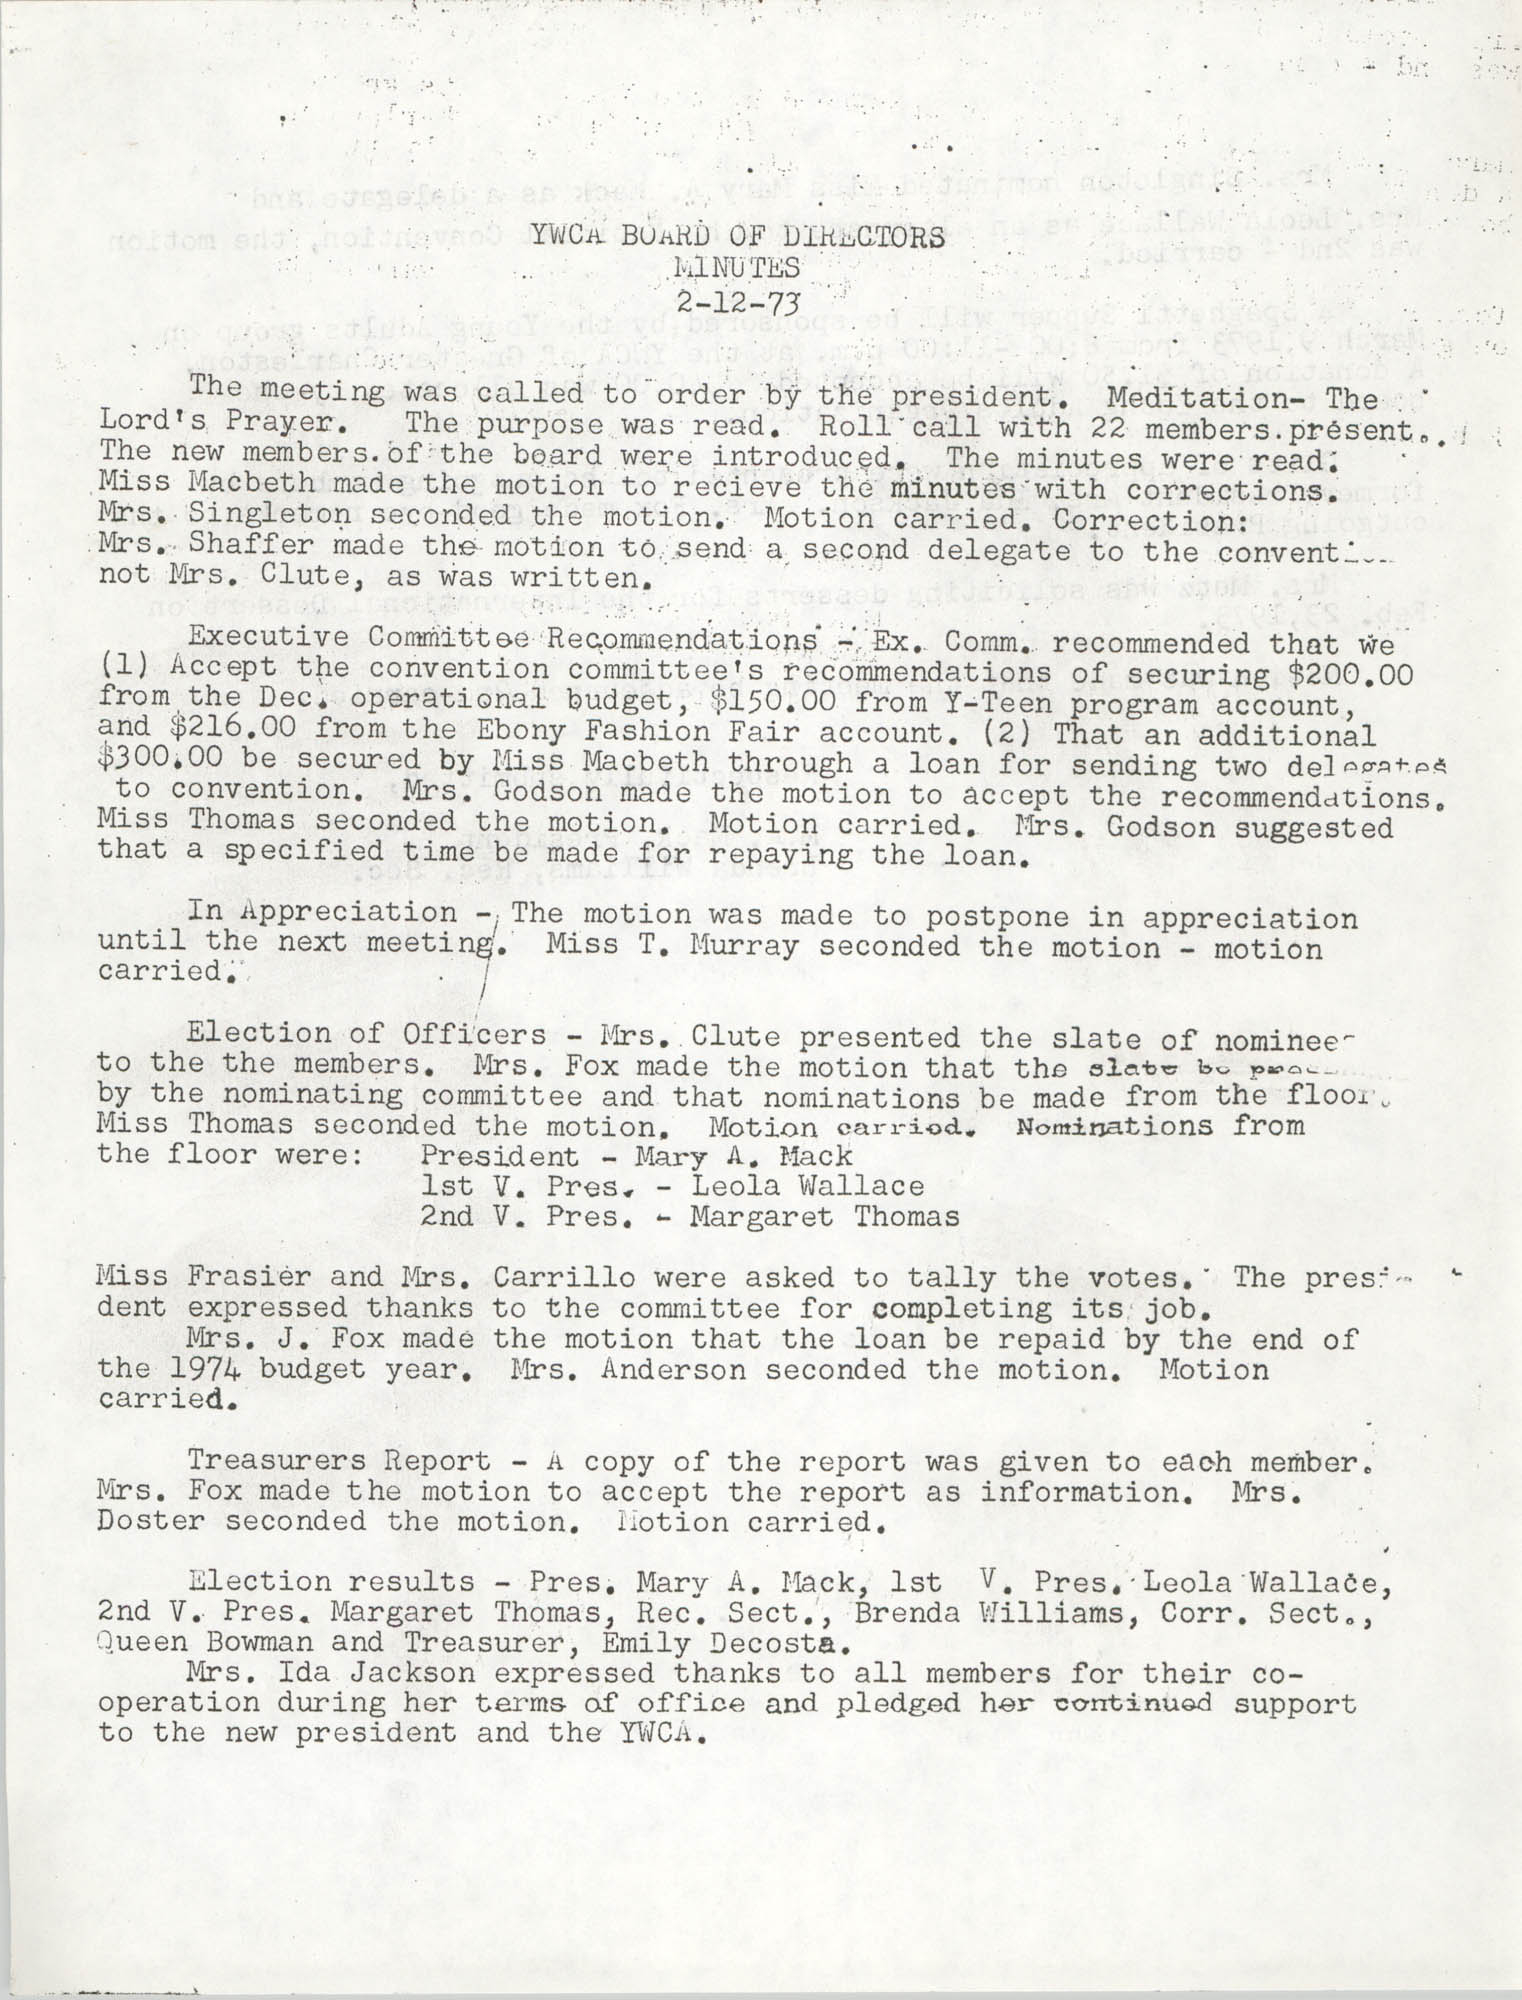 Minutes to the Y.W.C.A. Board of Director's Meeting, February 12, 1973